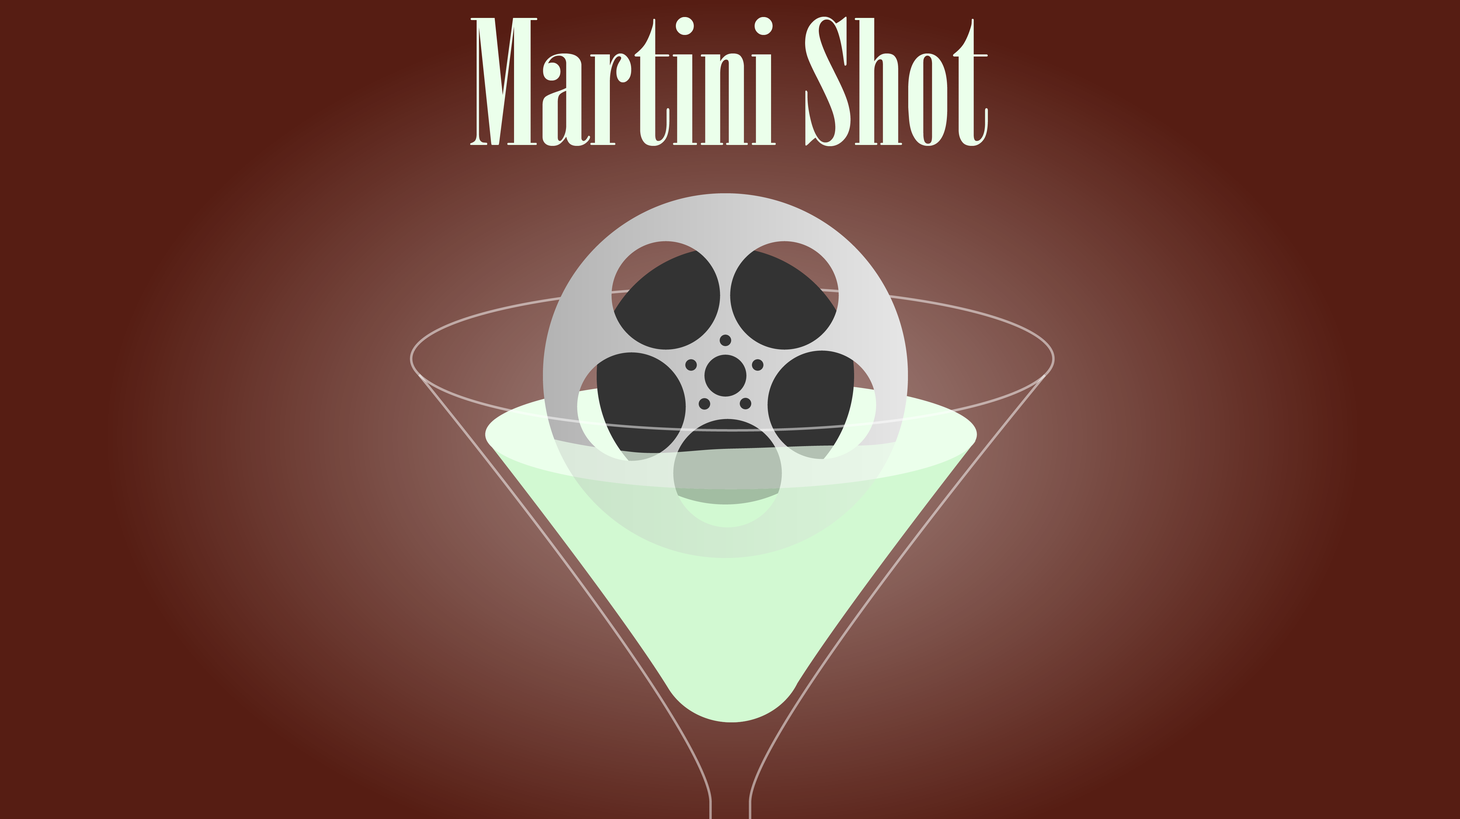 This is Rob Long and on today's Martini Shot I tell the story of the young comedy writer who has dinner with the older comedy writer, and the young comedy writer has the temerity to say something funny. Bad move.